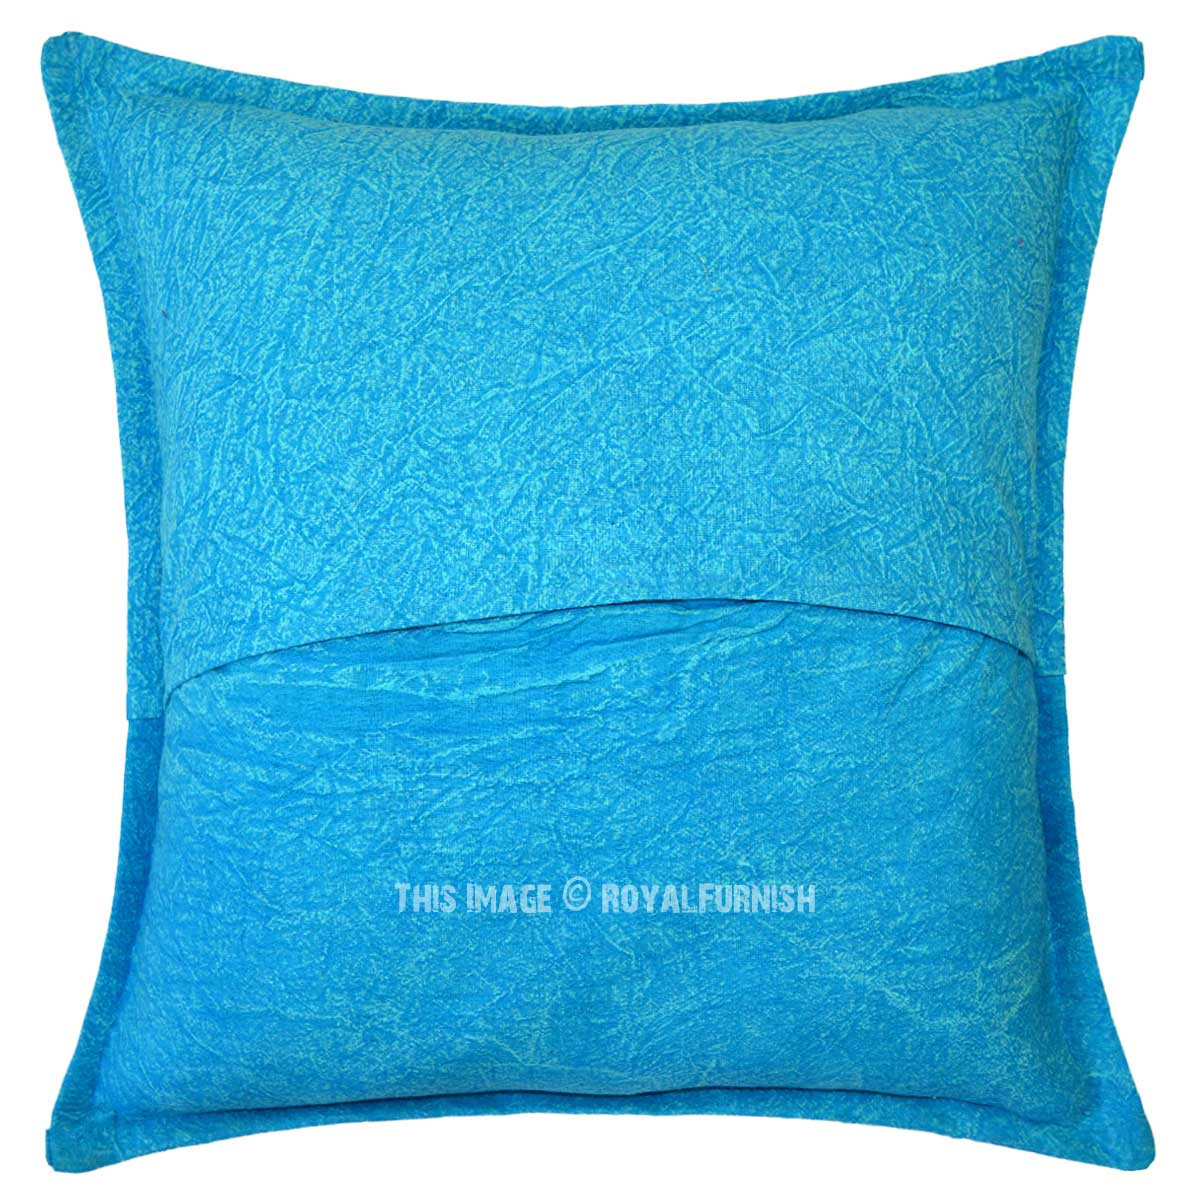 Throw Pillows With Stars : Turquoise Blue Decorative Star Mirrored Square Throw Pillow Cover 16X16 - RoyalFurnish.com